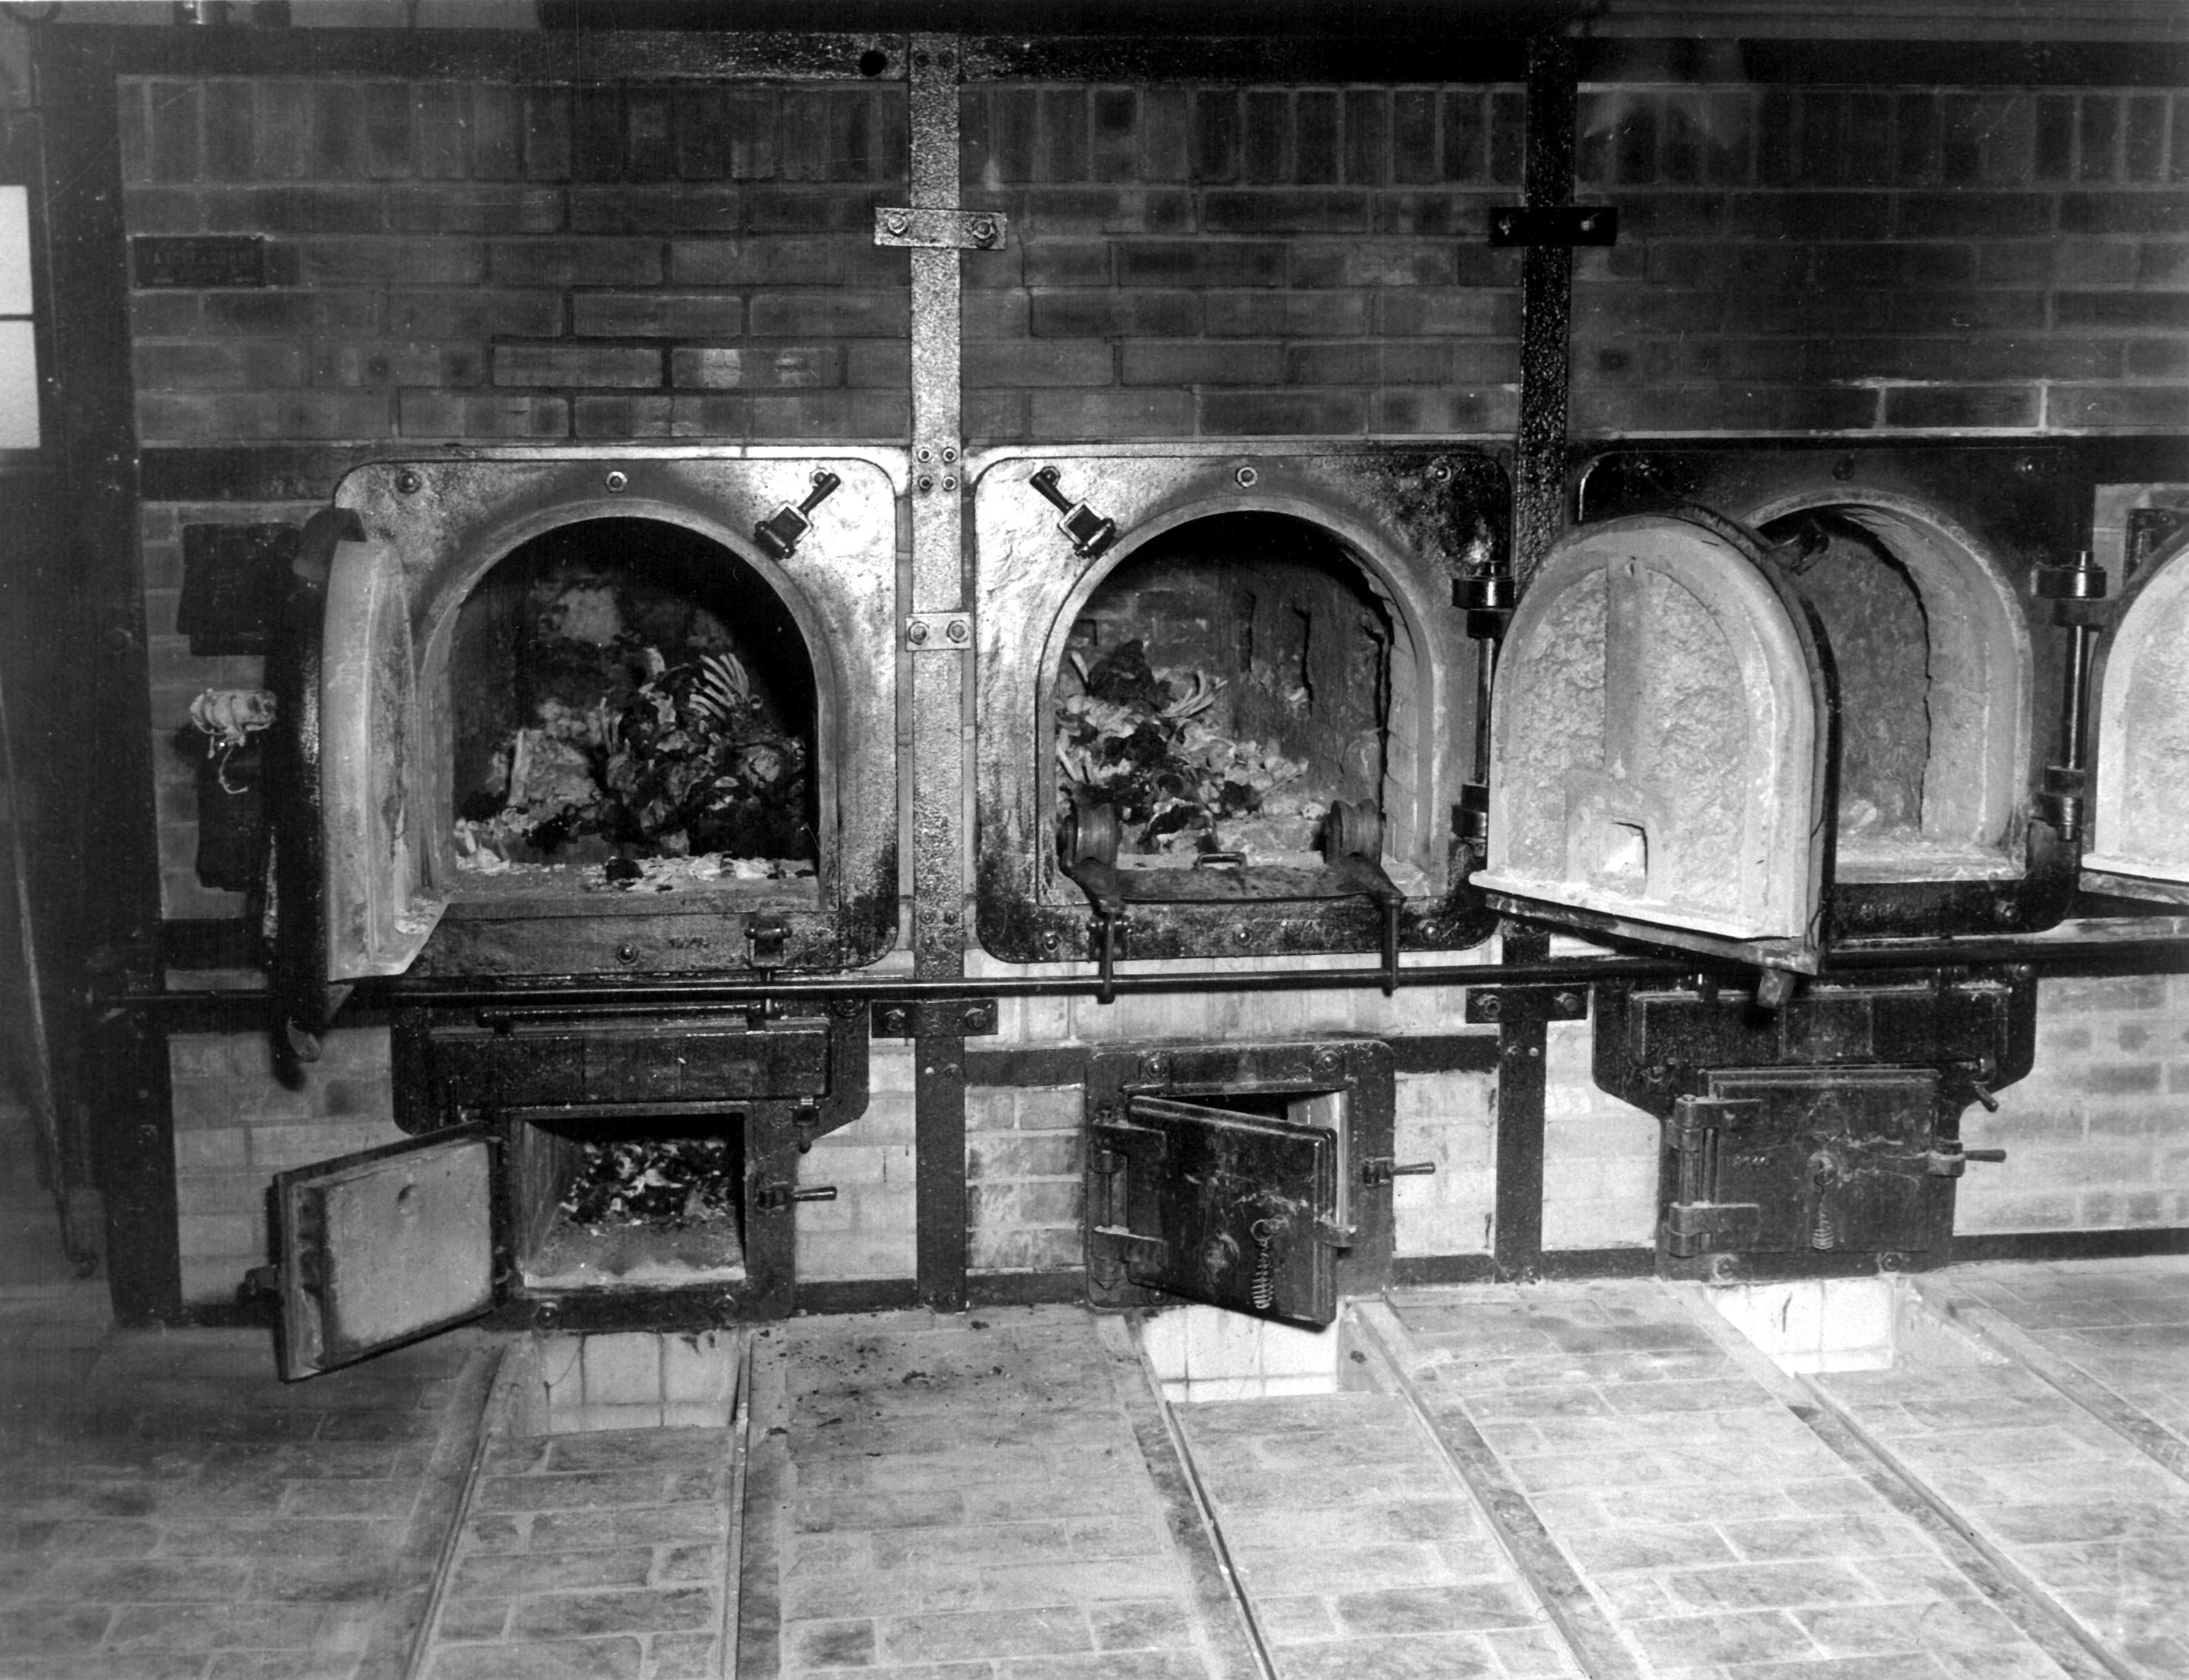 https://upload.wikimedia.org/wikipedia/commons/9/9f/Bones_of_anti-Nazi_German_women_still_are_in_the_crematoriums_in_the_German_concentration_camp_at_Weimar%2C_Germany.jpg